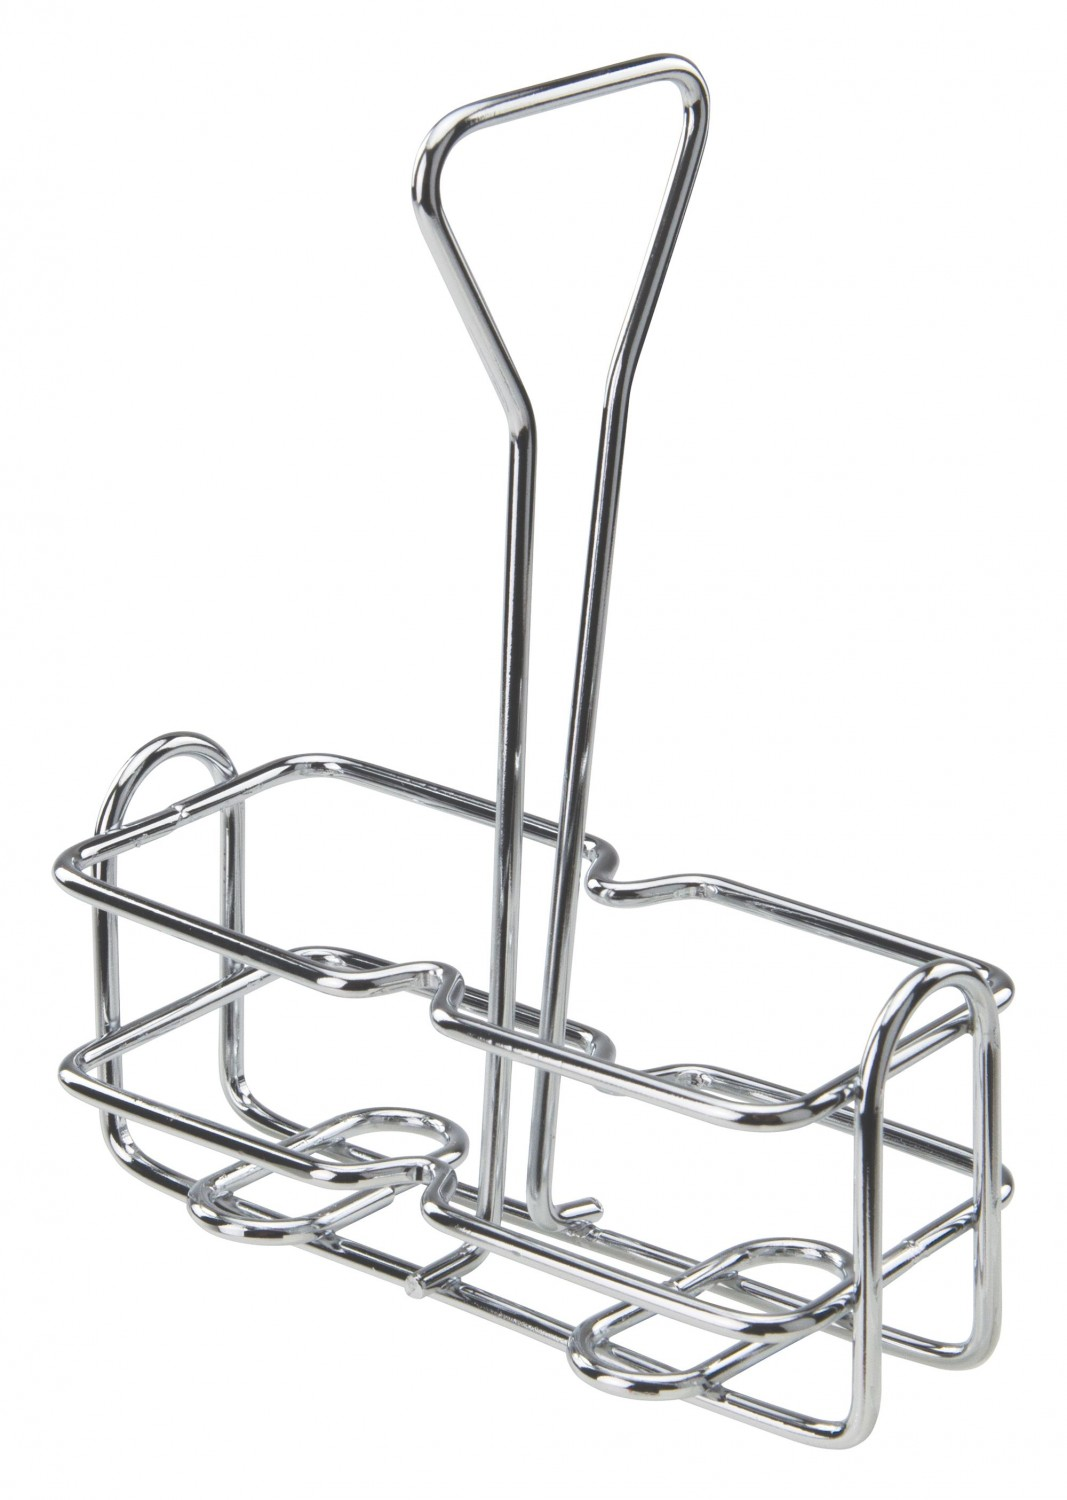 Winco WH-3 Square Chrome Plated Oil and Vinegar Holder 6 oz.